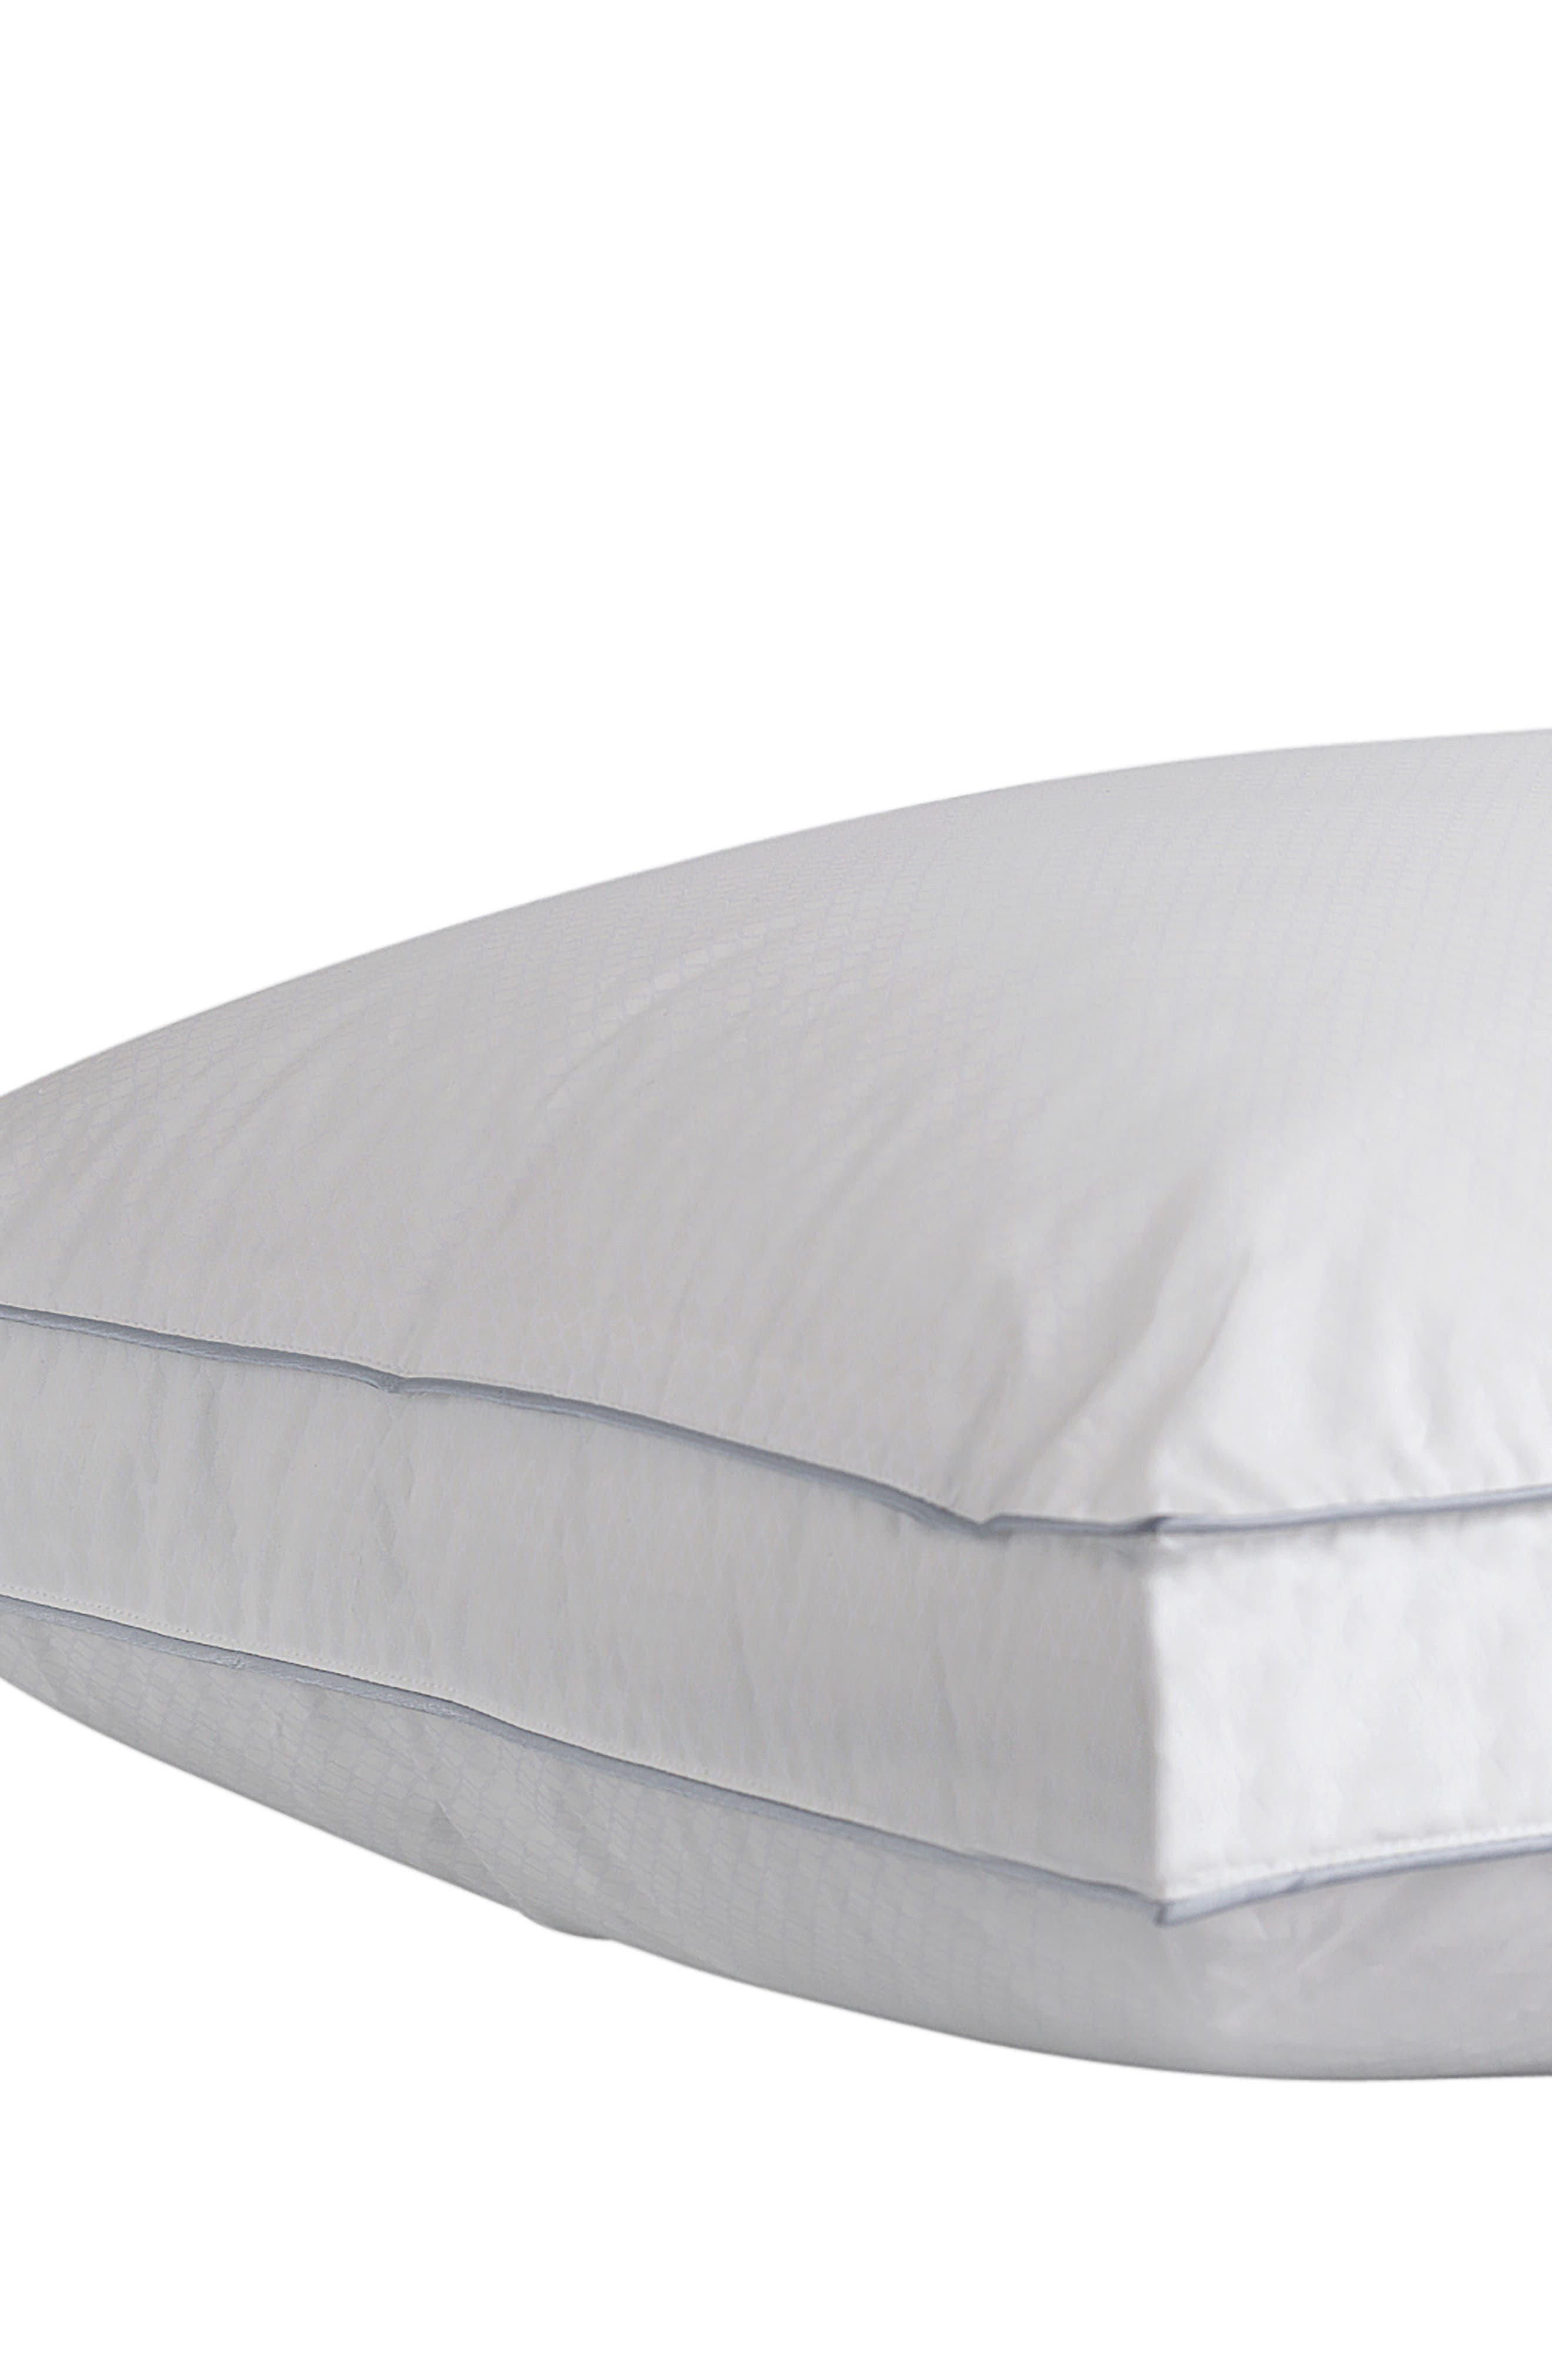 Gusseted Pillow,                         Main,                         color, White